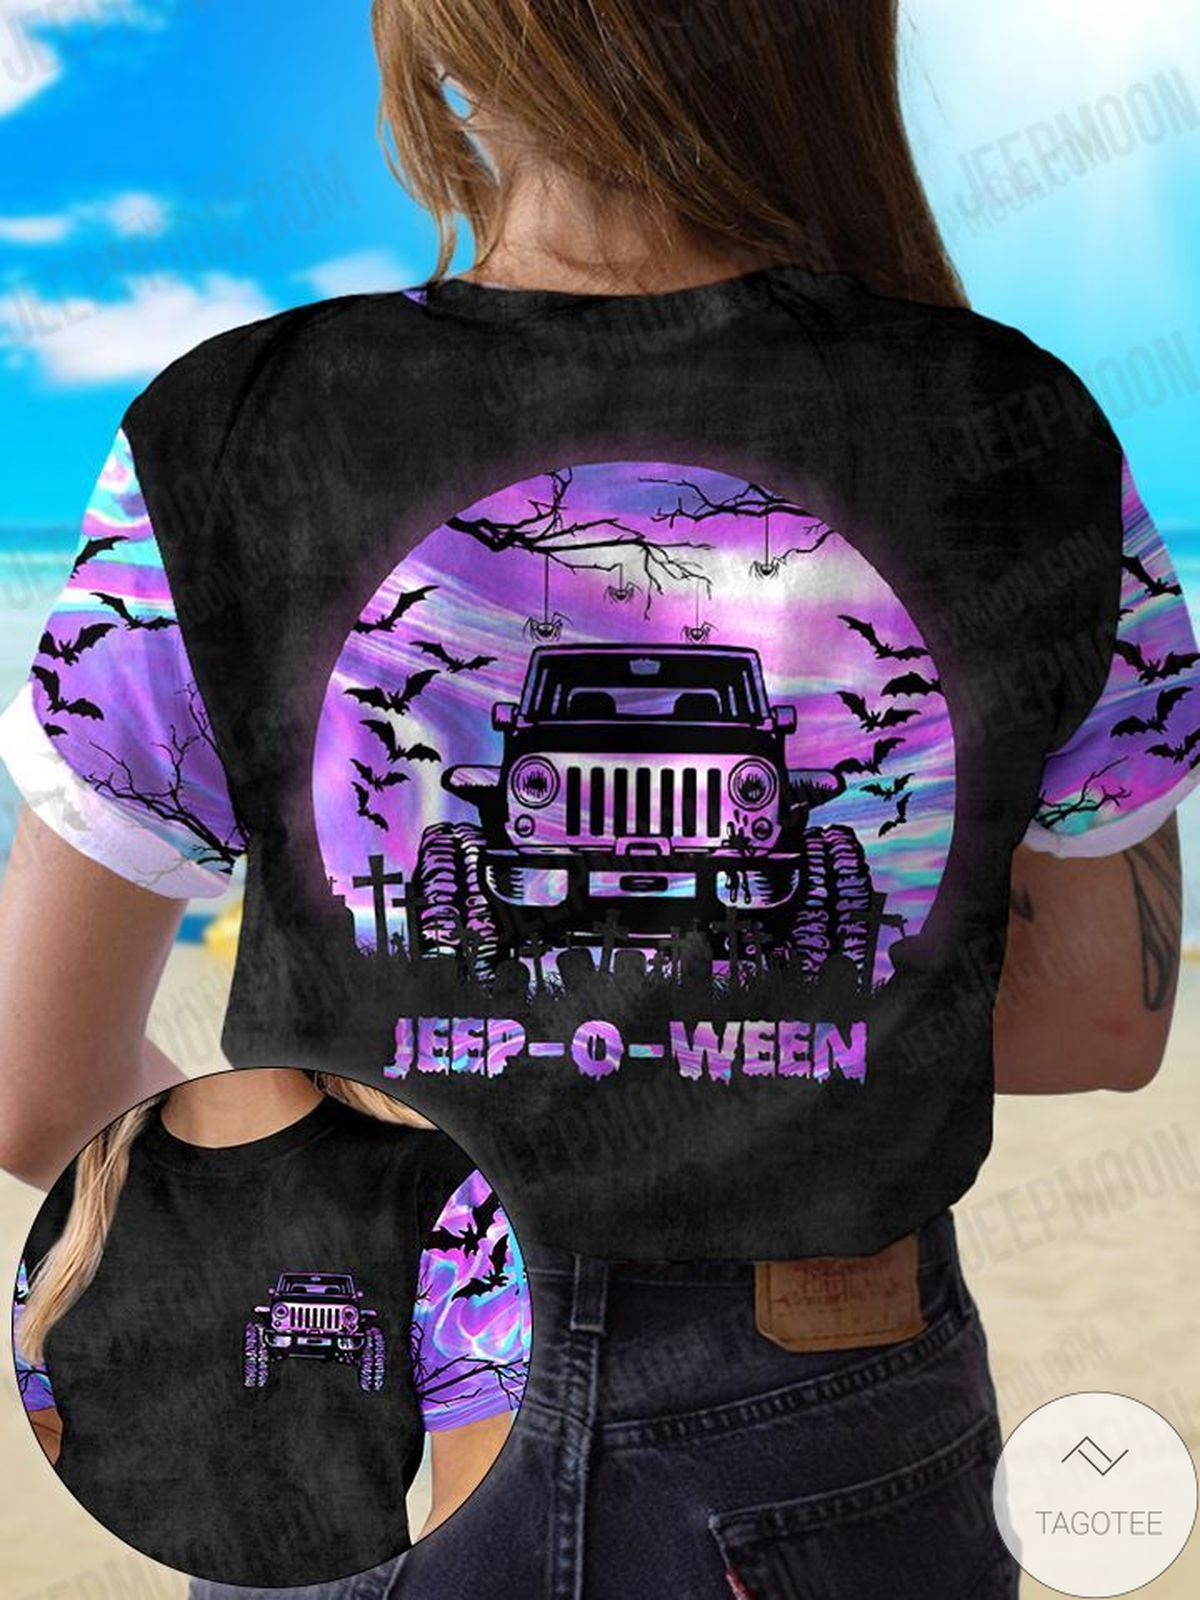 Jeep - O - Ween T-Shirt